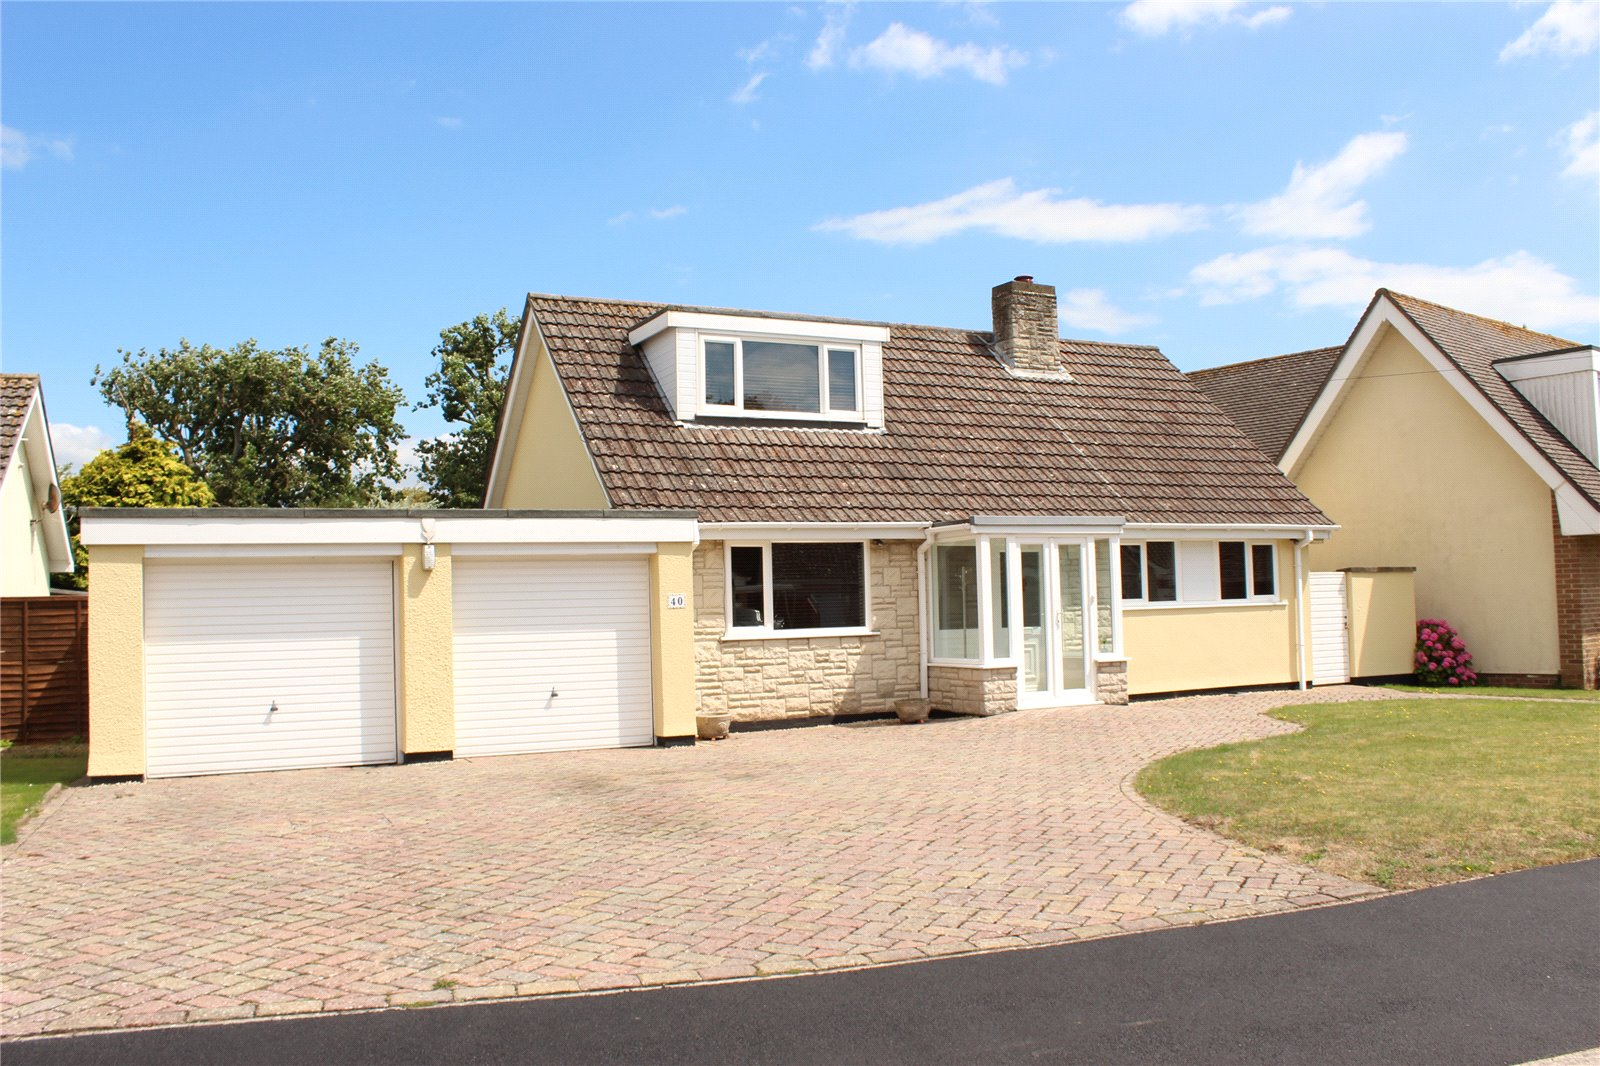 3 Bedrooms Bungalow for sale in Golf Links Road Burnham on Sea Somerset TA8